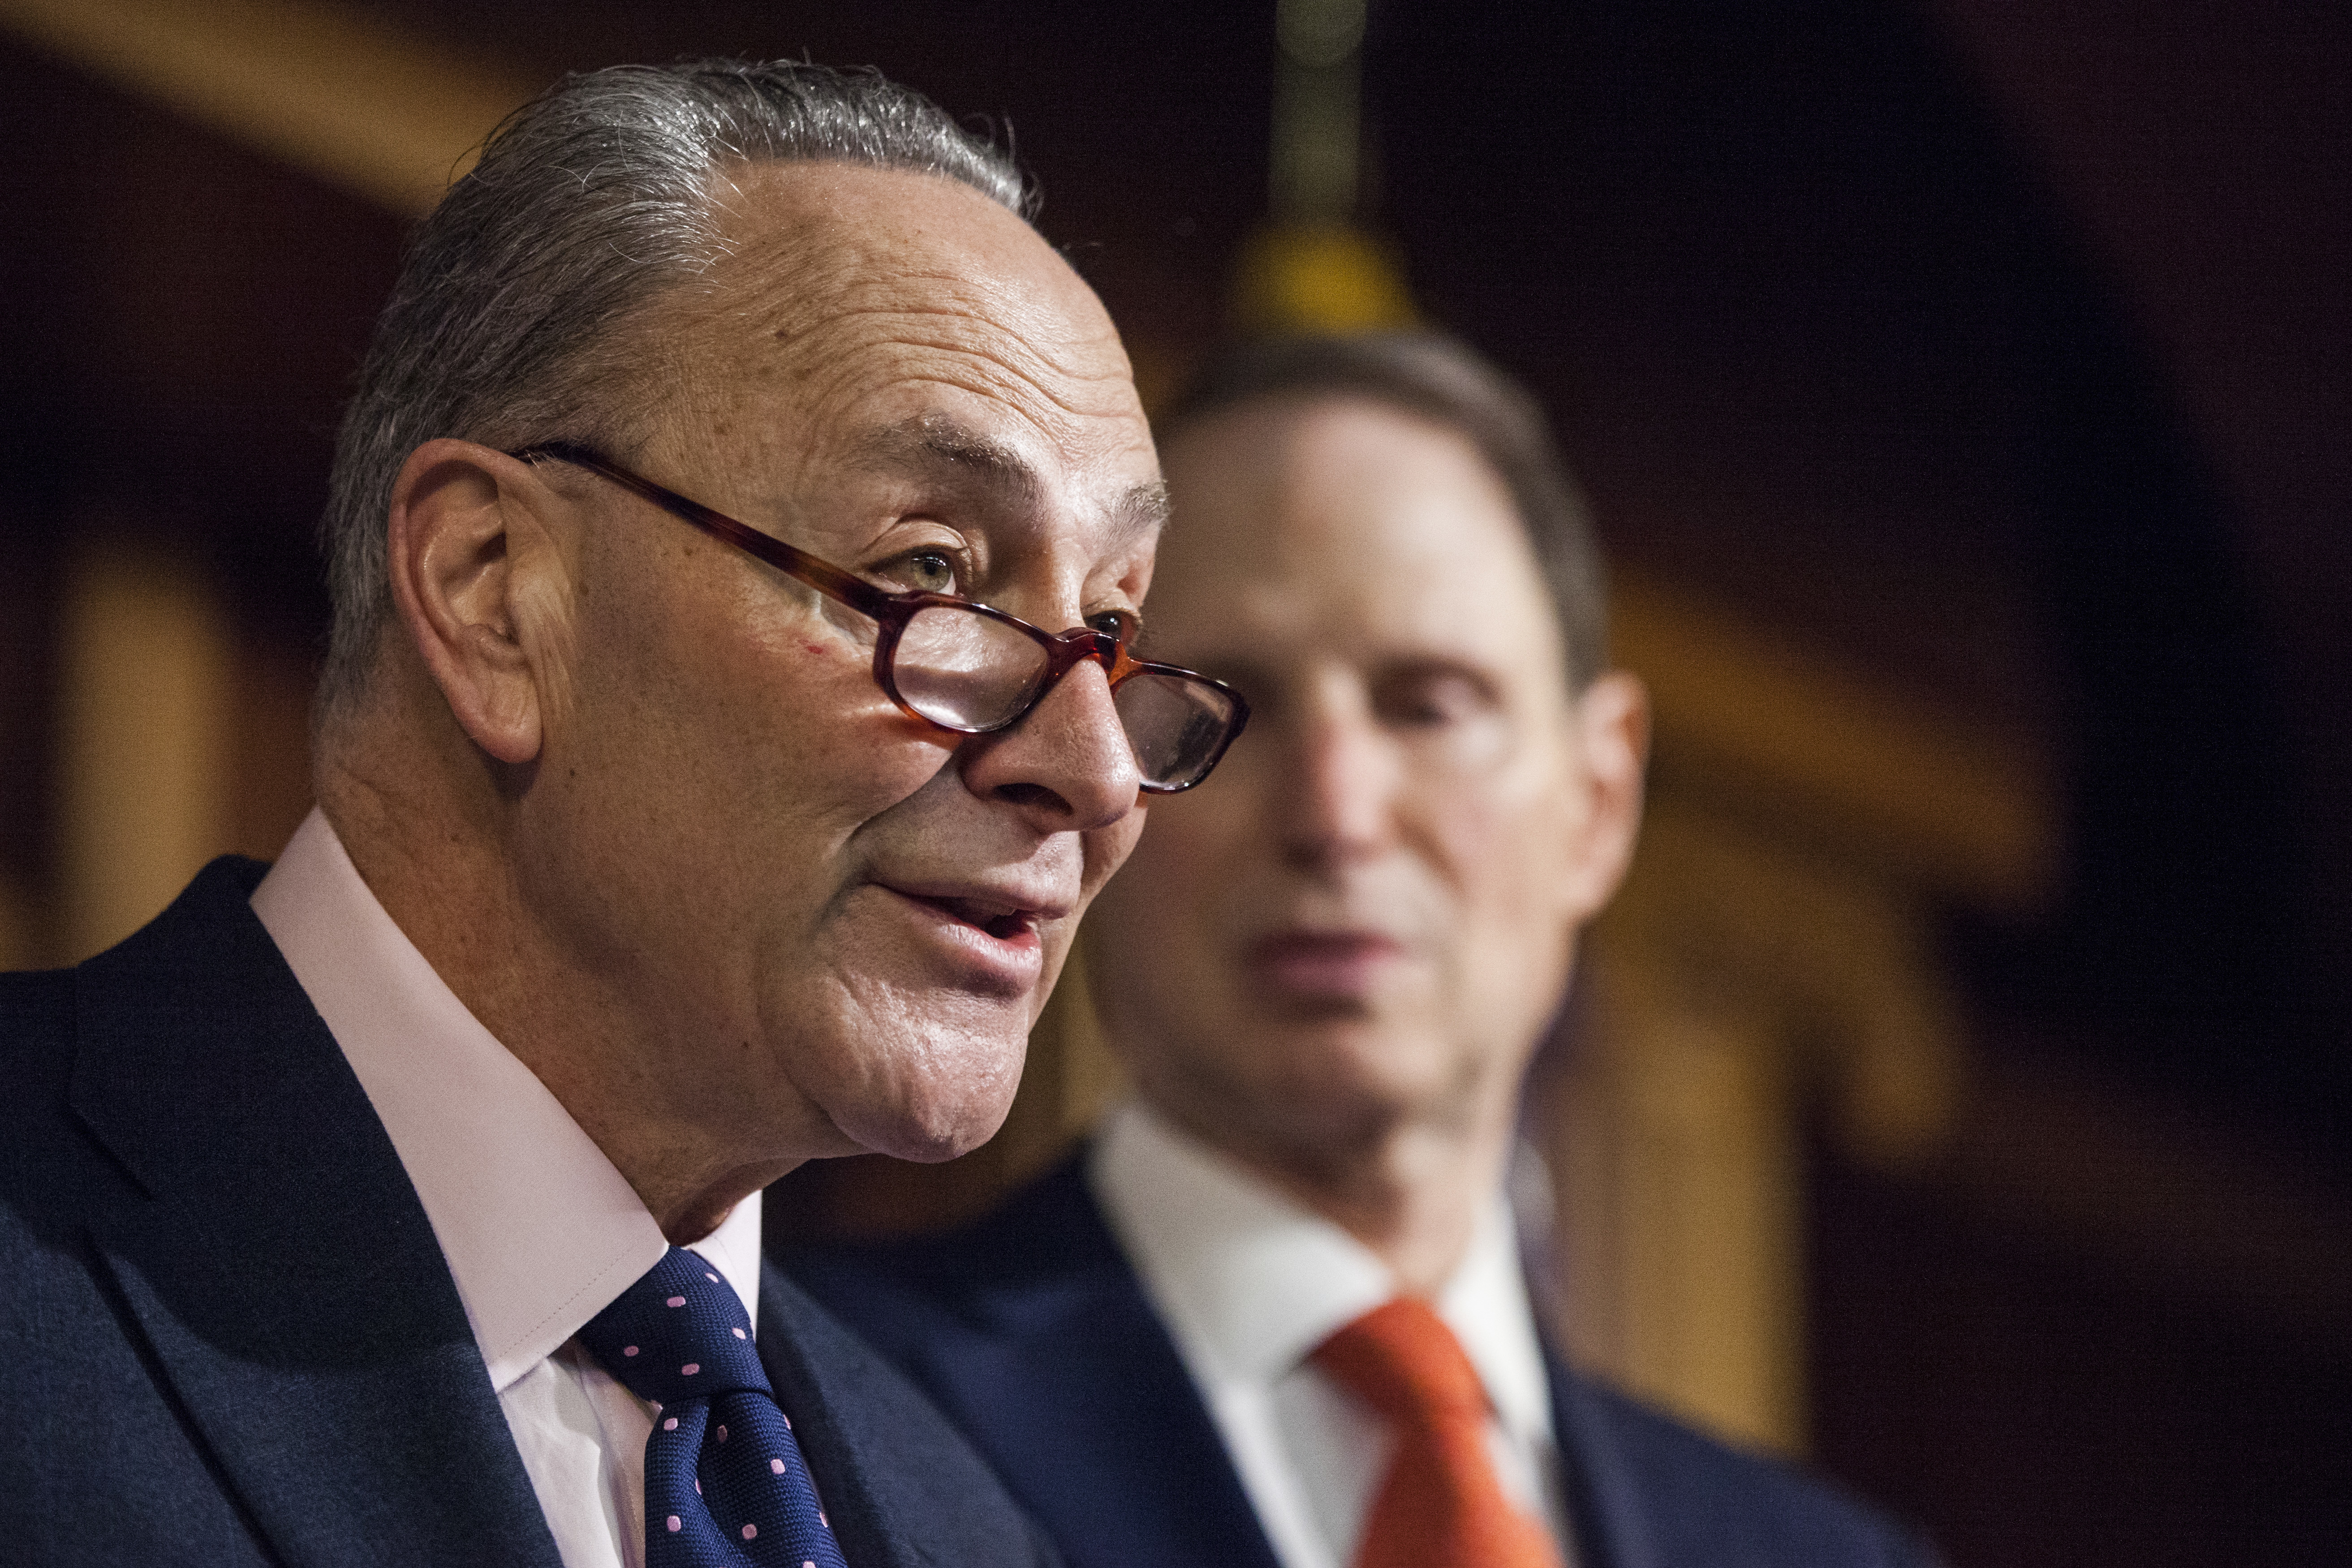 Senate Minority Leader Charles Schumer of N.Y. (L) accompanied by Sen. Ron Wyden, D-Ore., during a news conference on Capitol Hill in Washington on Jan. 5, 2017. (AP Photo/Zach Gibson)